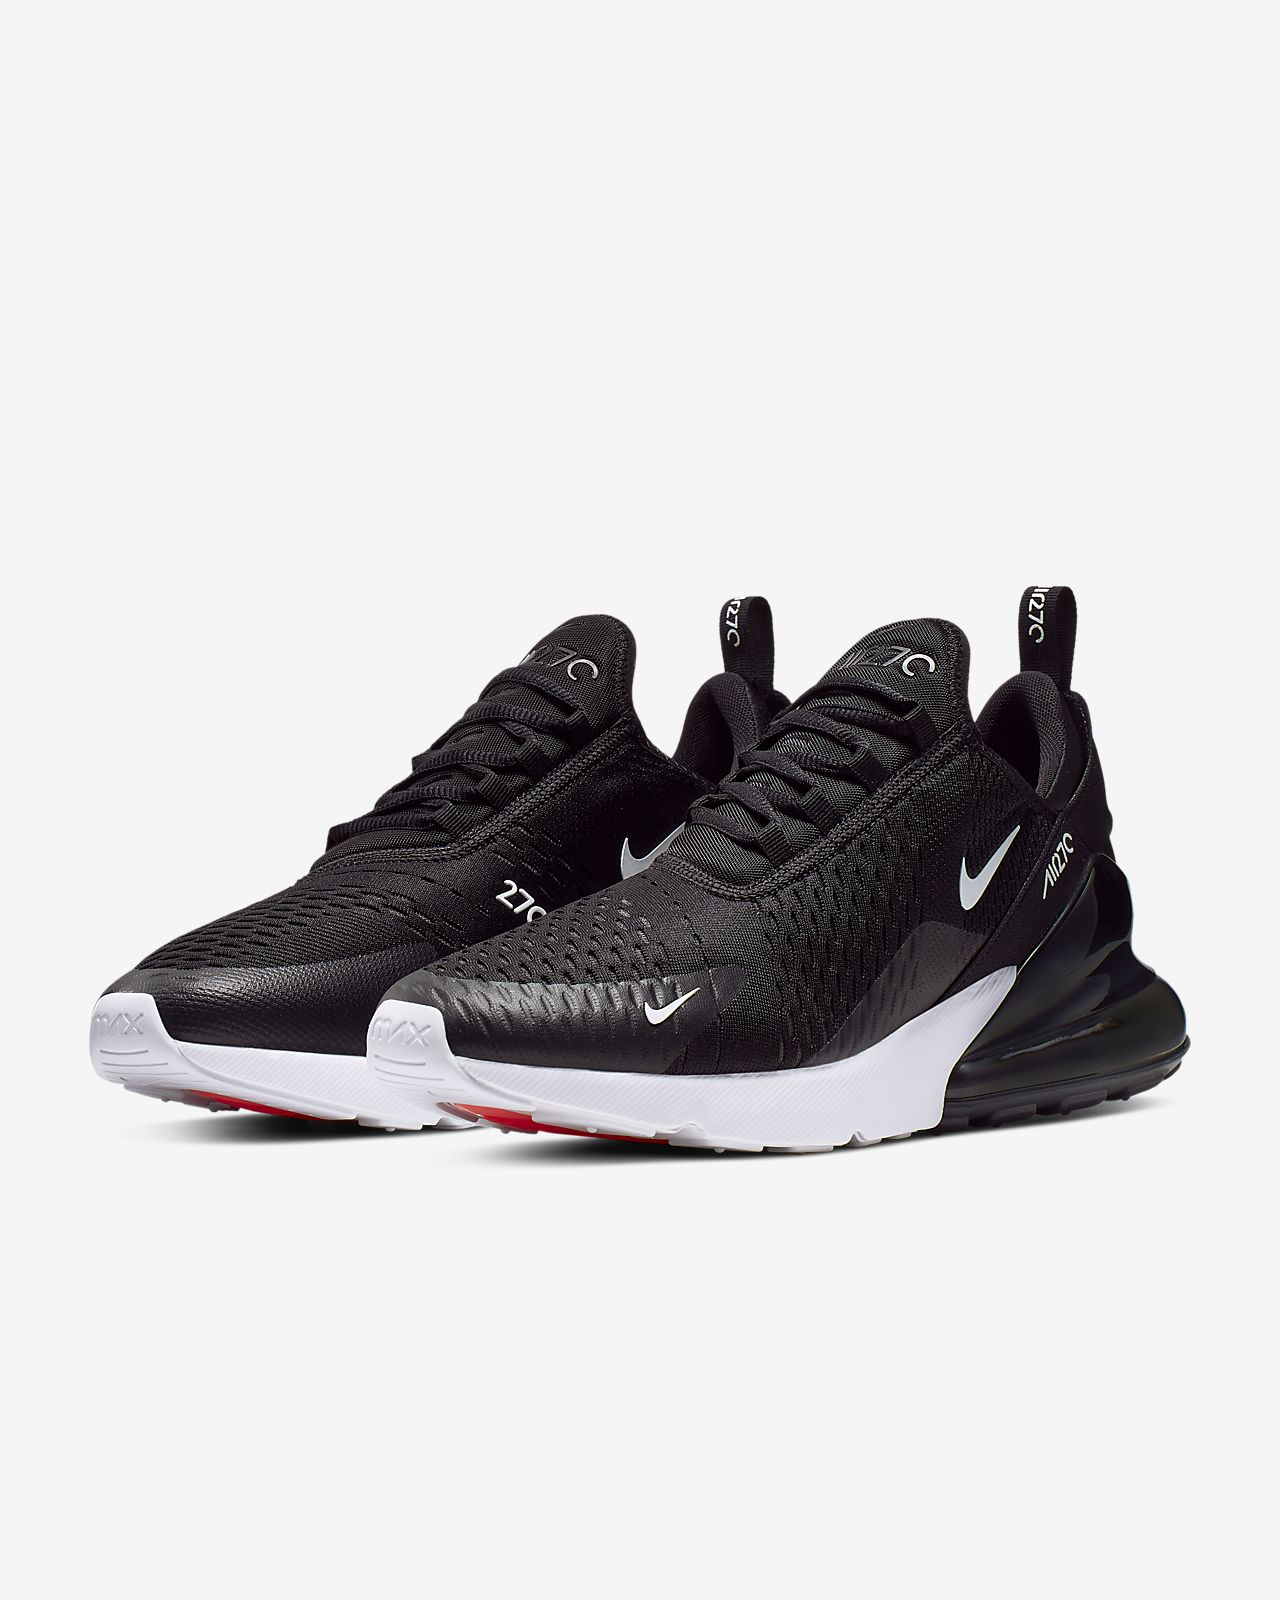 lowest price 4b02f 15d87 ... Nike Air Max 270 Men s Shoe